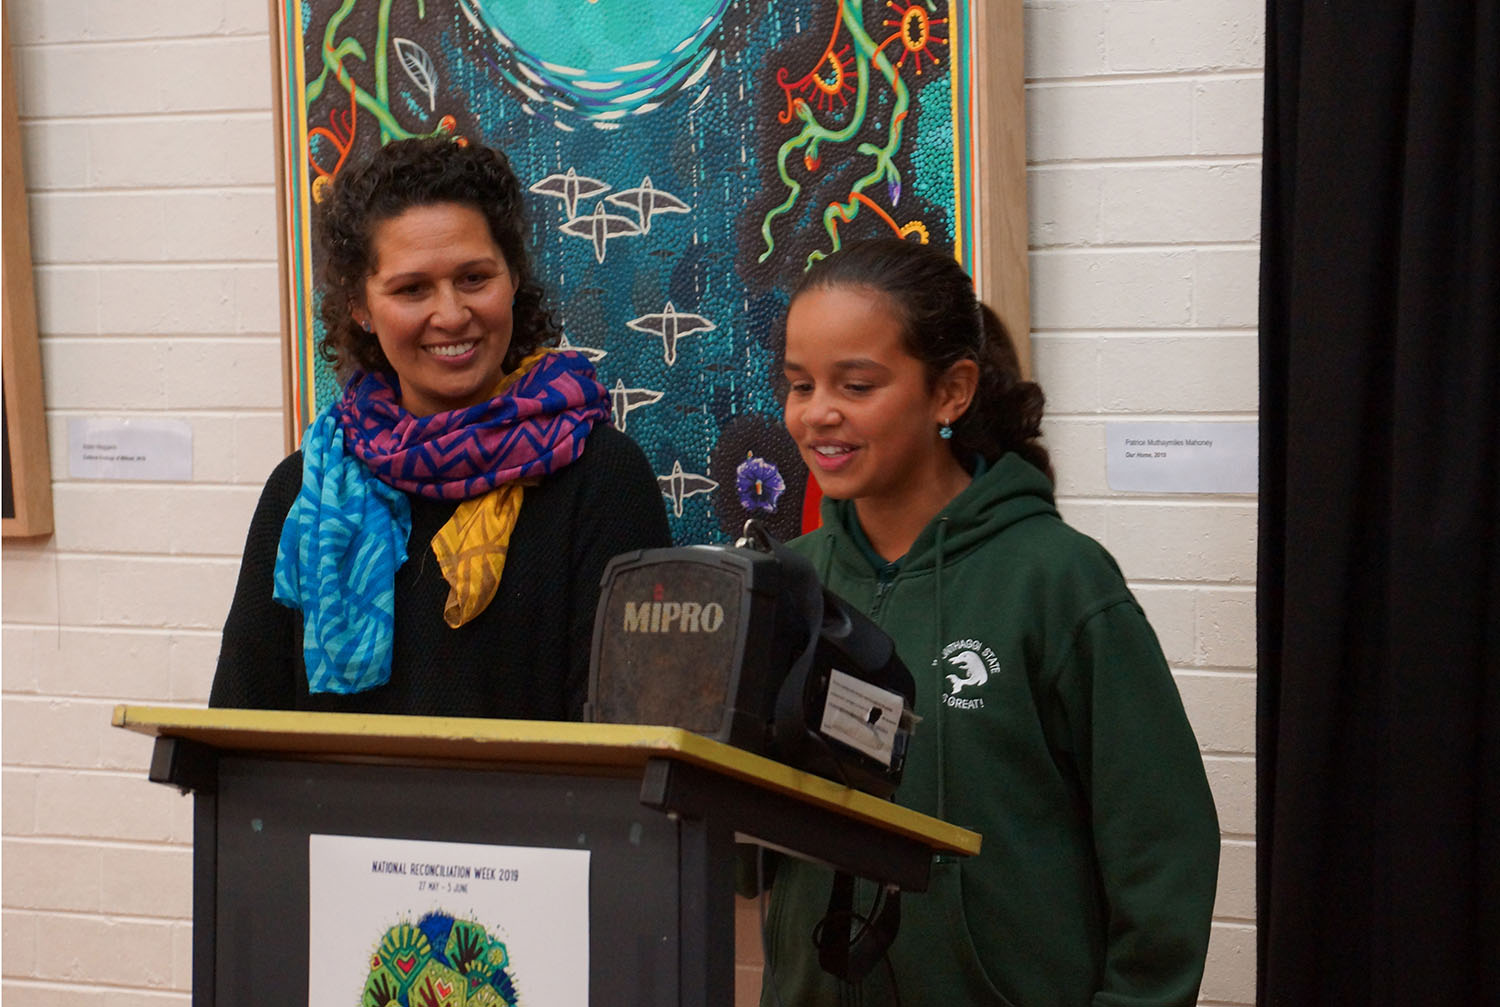 Arieta and Safina presenting artwork